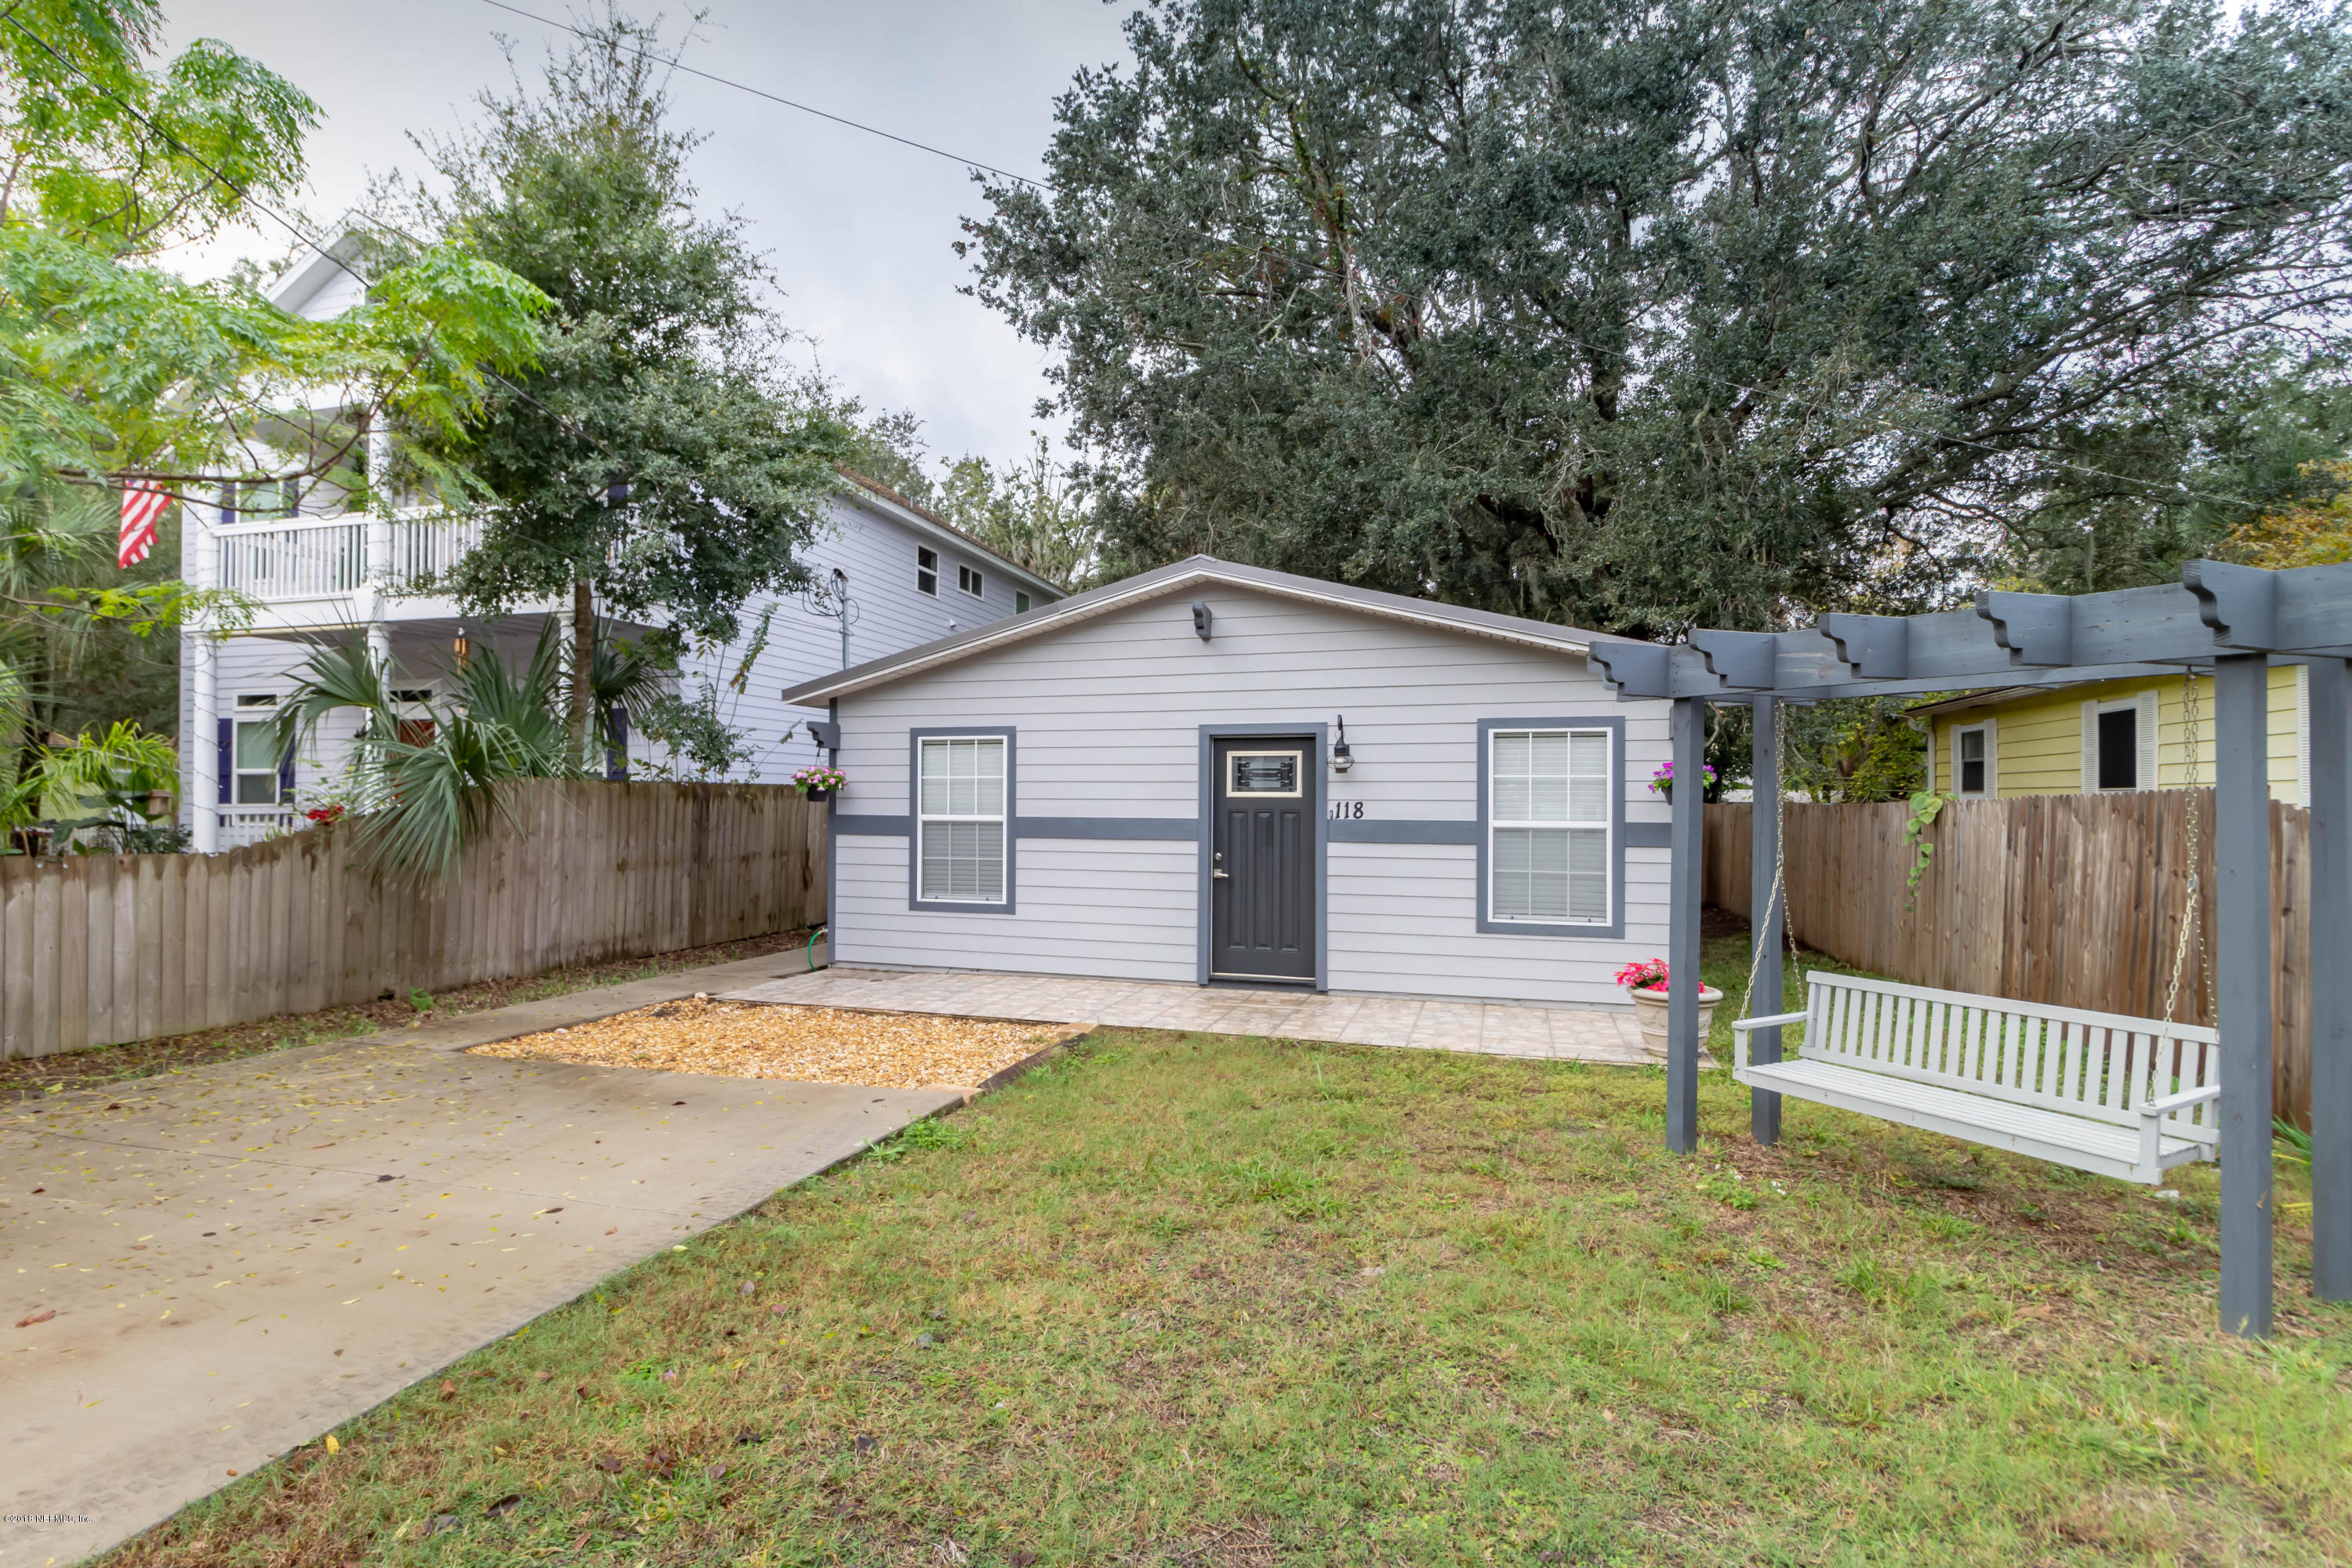 118 TWINE, ST AUGUSTINE, FLORIDA 32084, 3 Bedrooms Bedrooms, ,1 BathroomBathrooms,Residential - single family,For sale,TWINE,969284